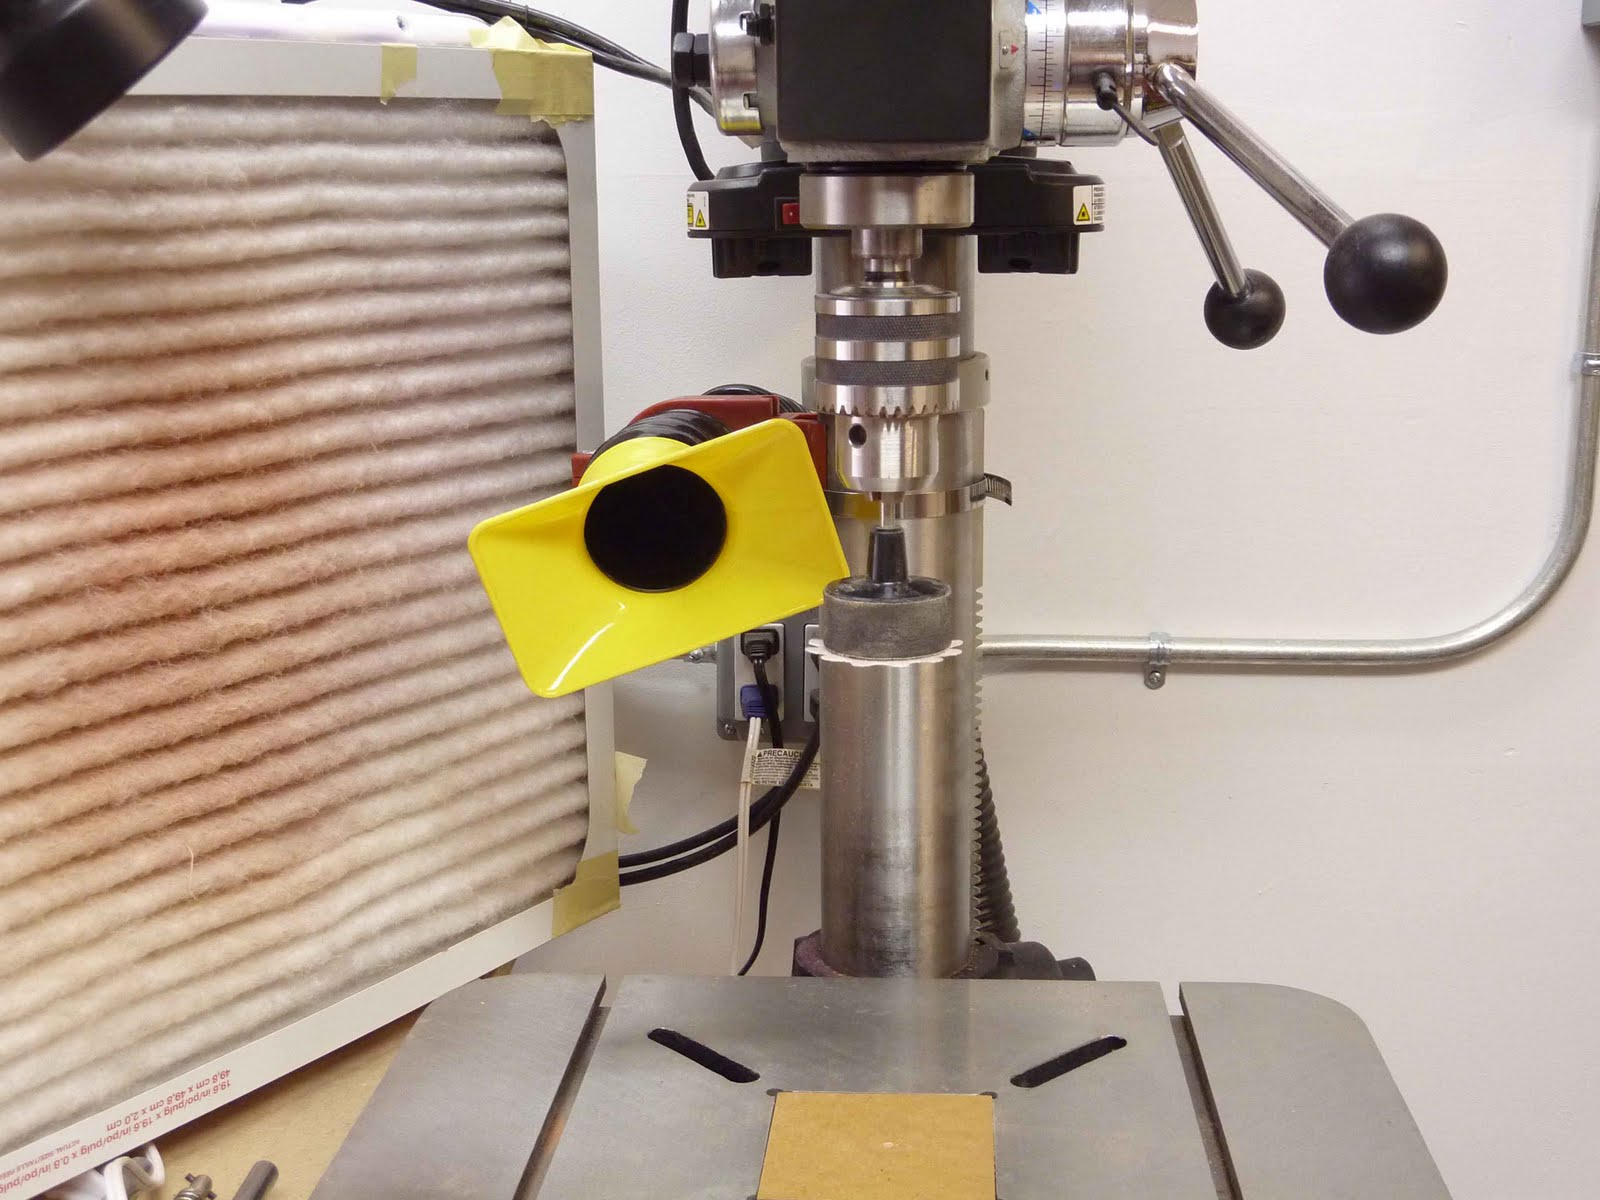 scroll saw bowls dust collection system for the drill press